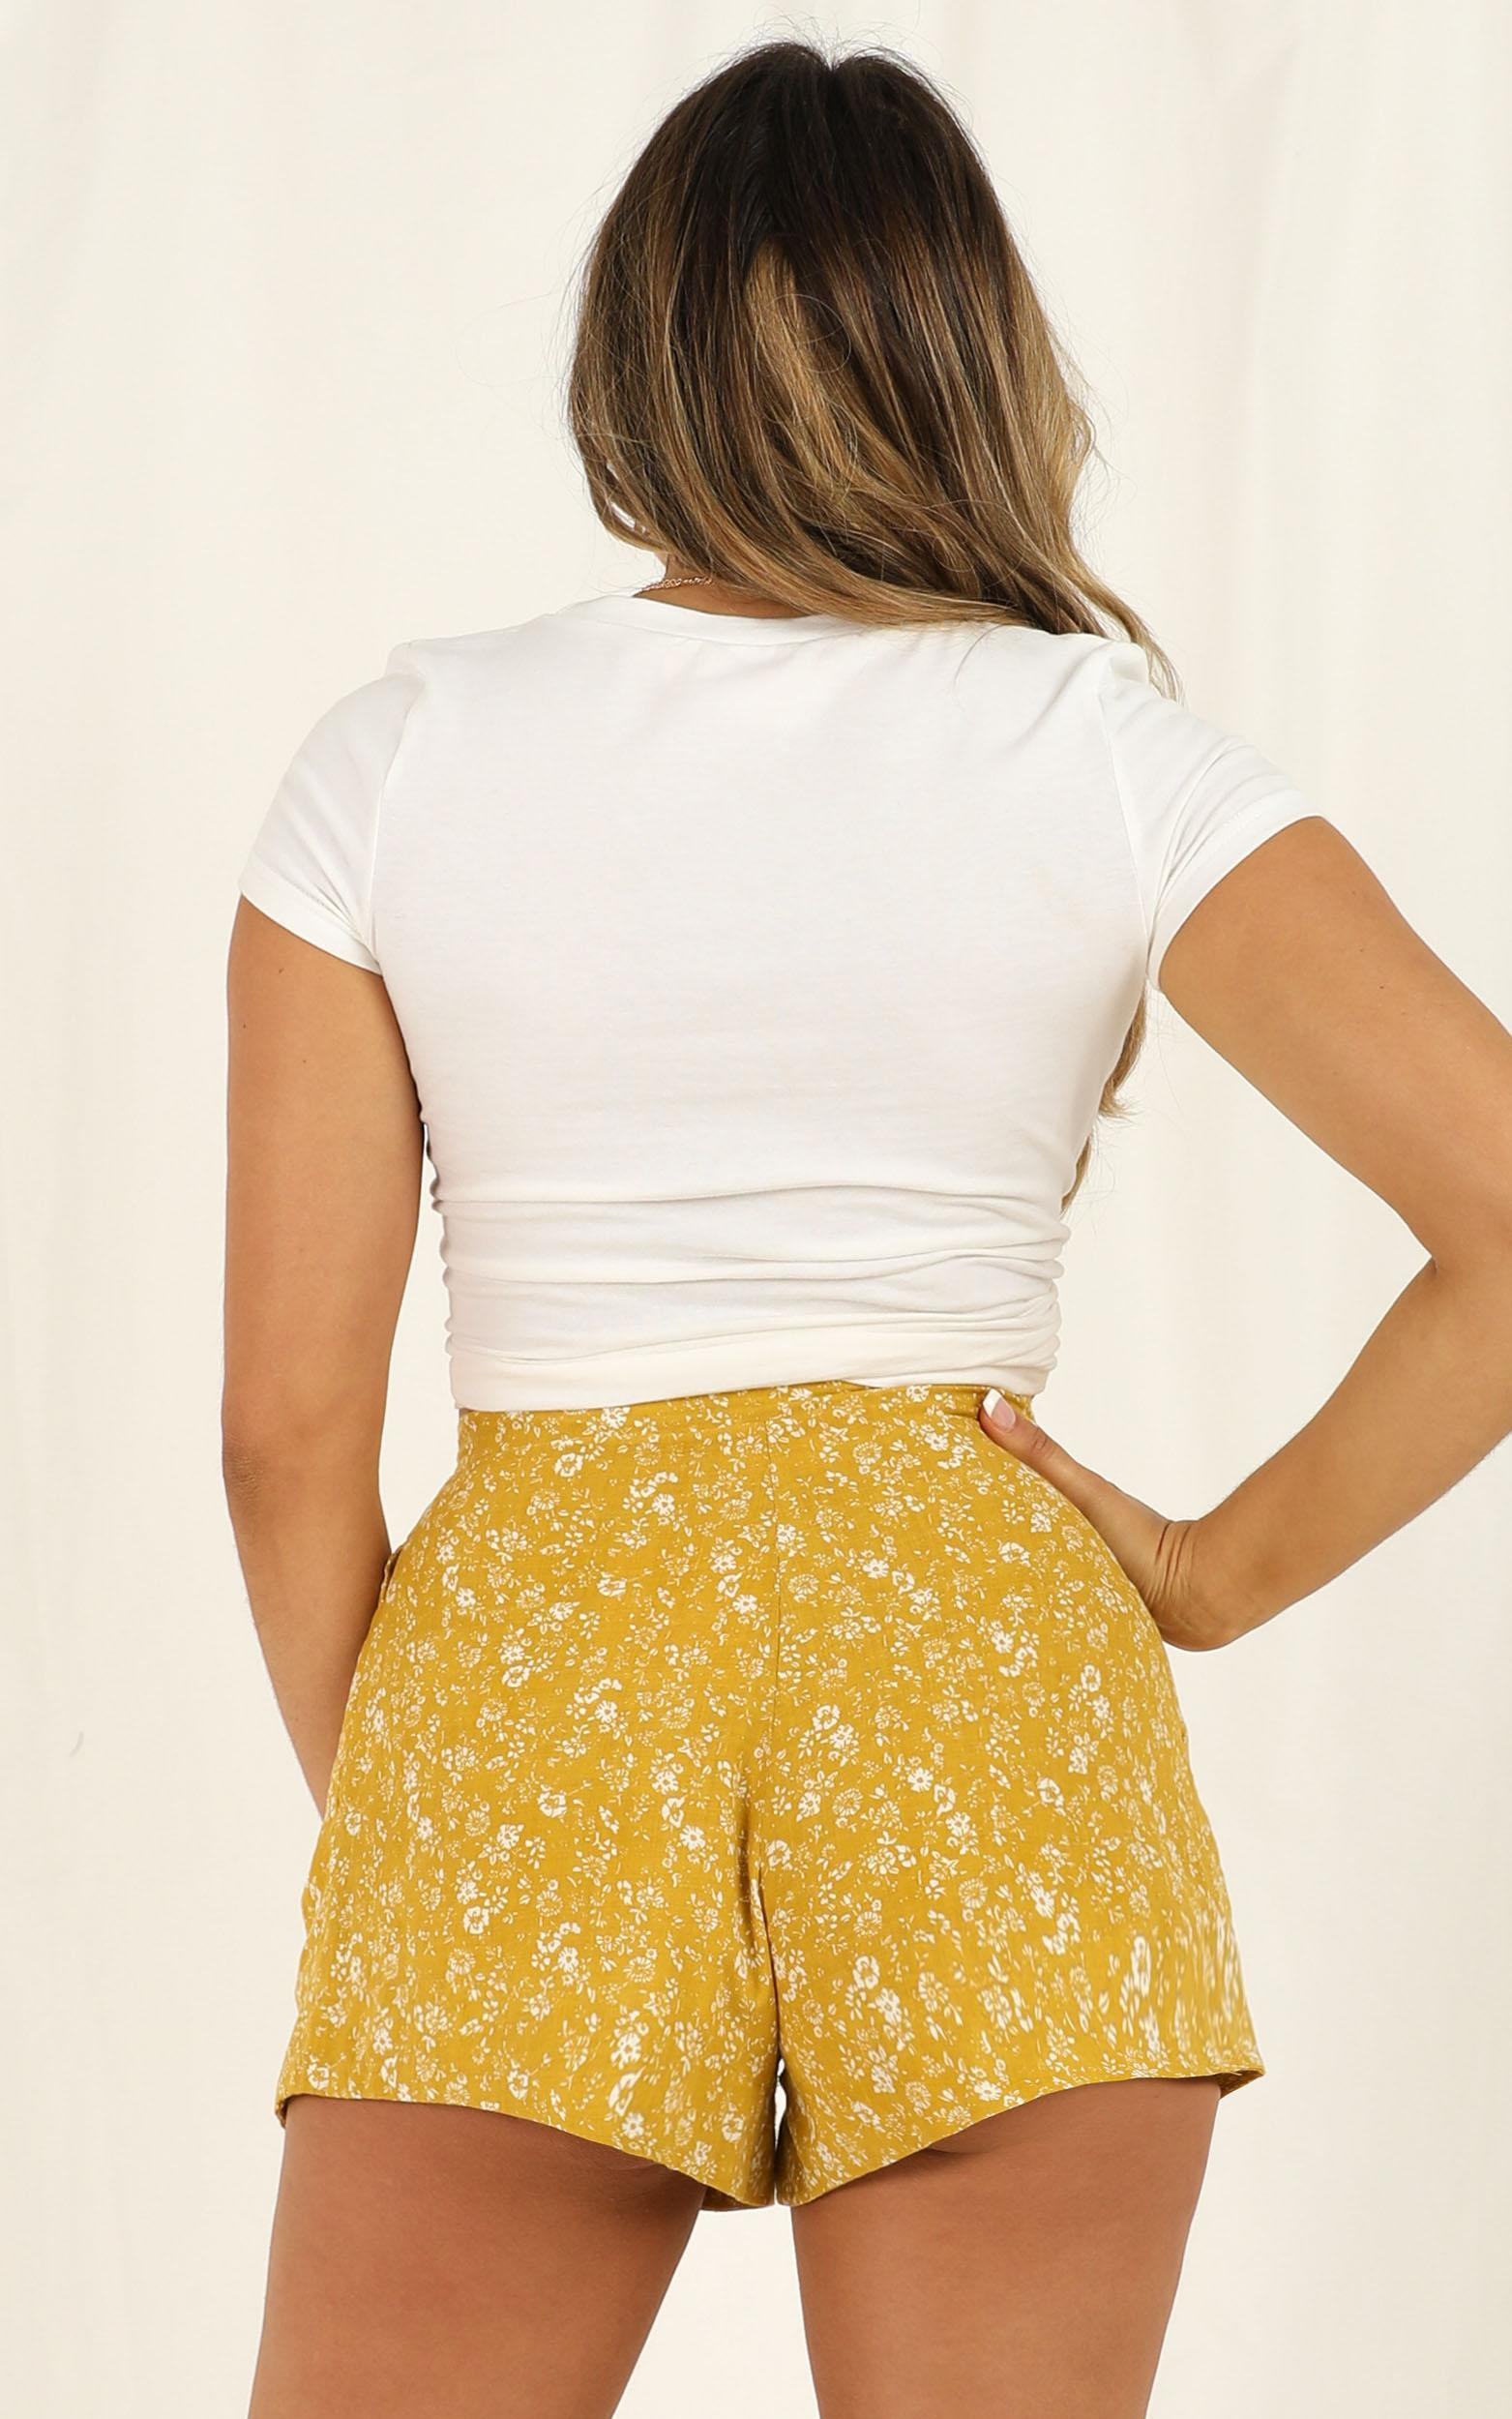 Jewel Of The Night Shorts In Yellow Floral - 12 (L), Yellow, hi-res image number null